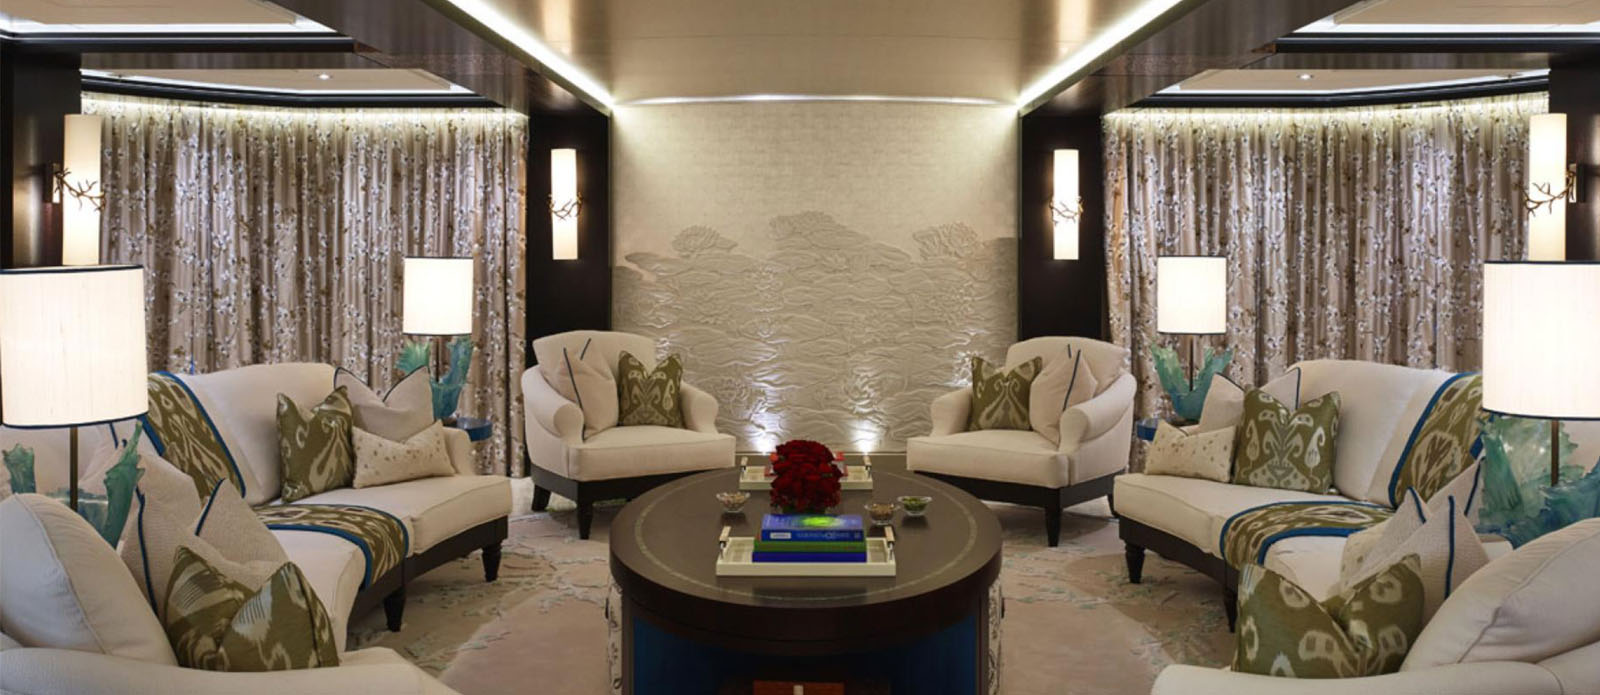 Tranquility - Formal Lounge